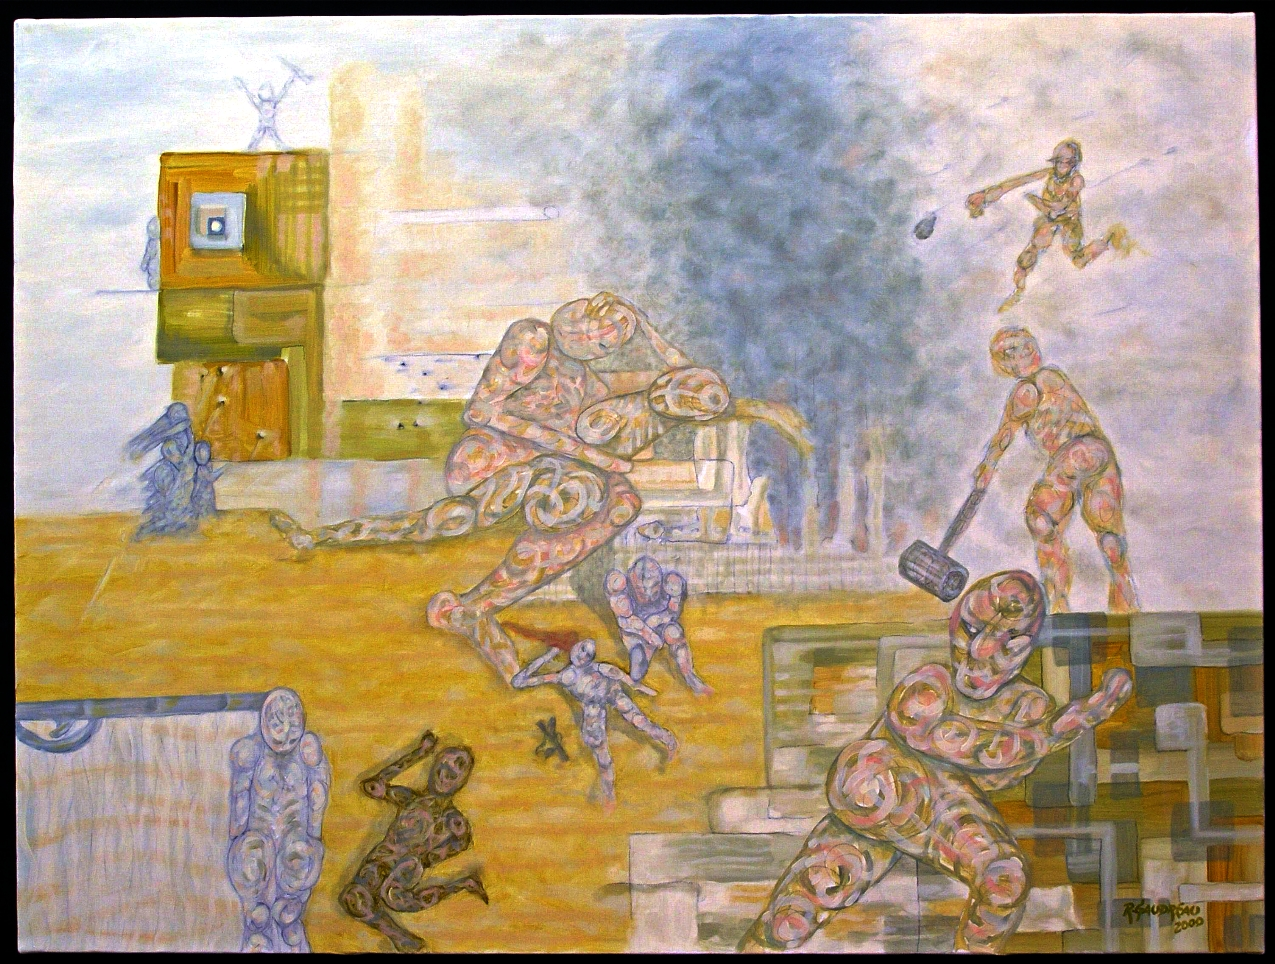 West Bank 2000 oil on canvas 30 x 40 inches